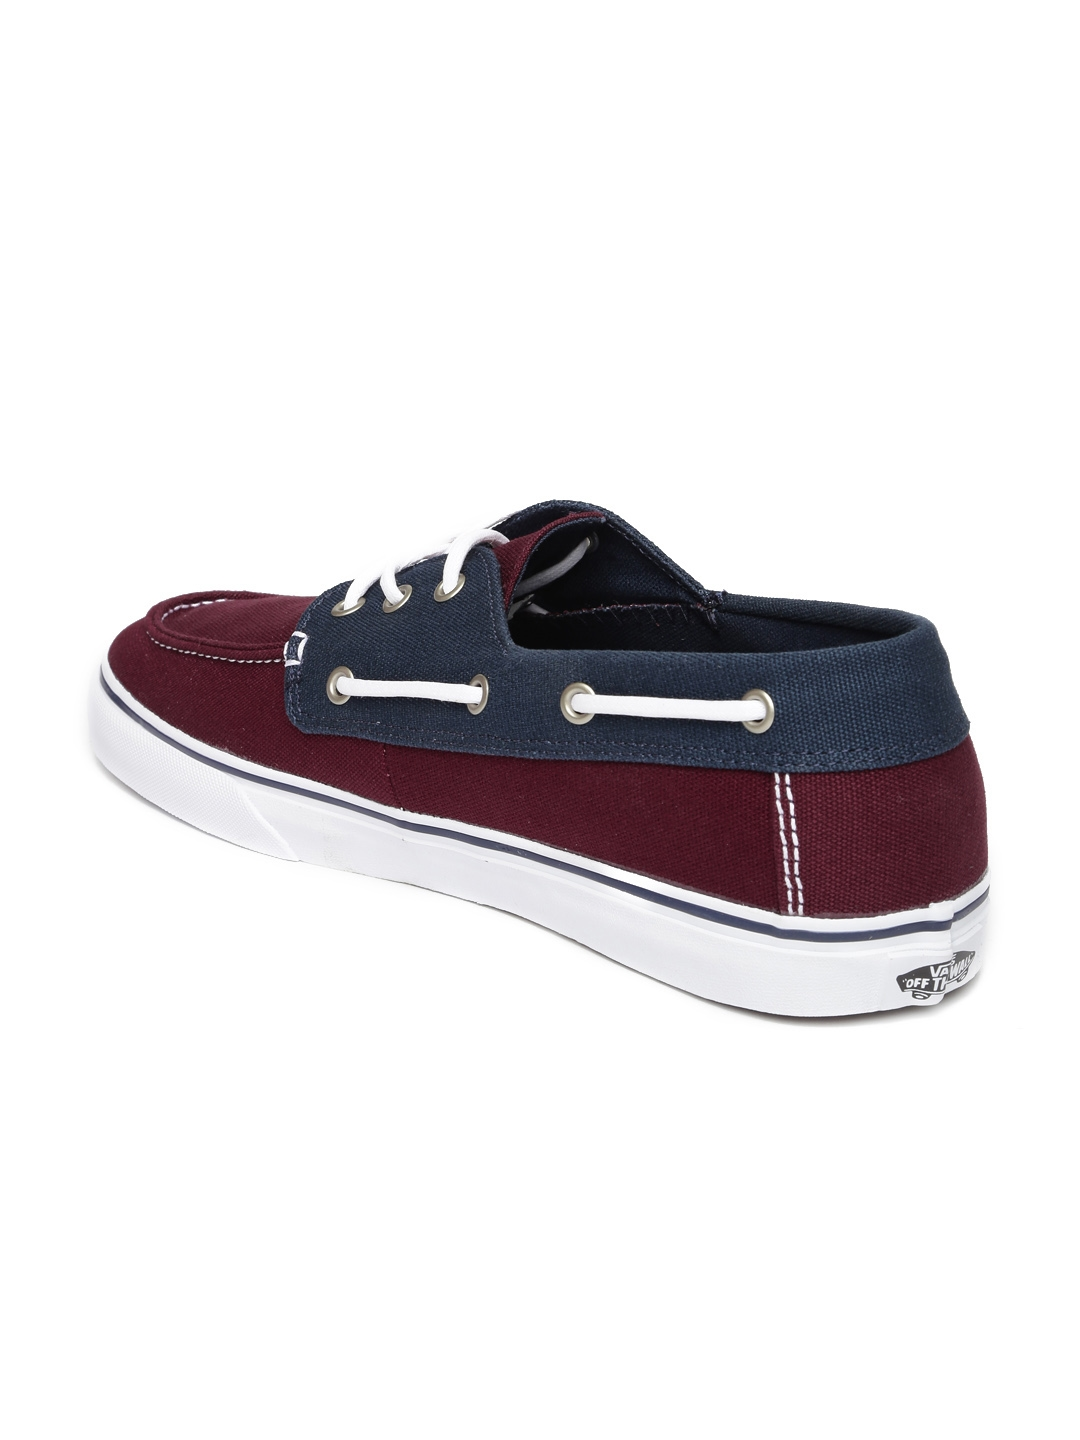 ... vans men burgundy colourblocked boat shoes casual shoes for ... 65e73736f